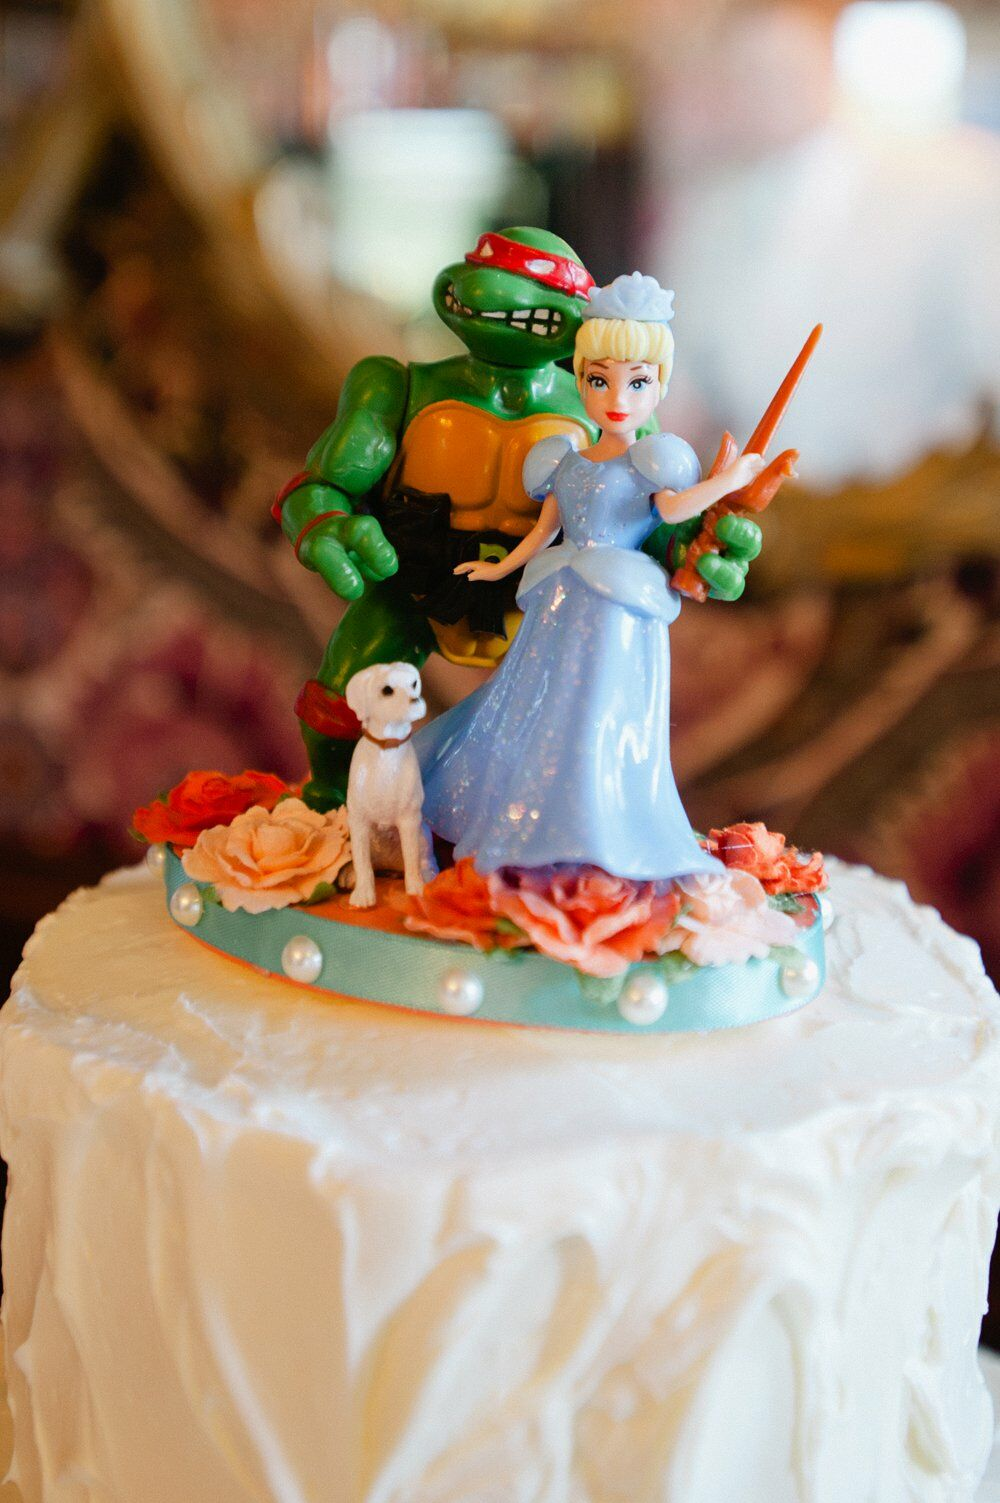 Ninja Turtle And Princess Cake Topper